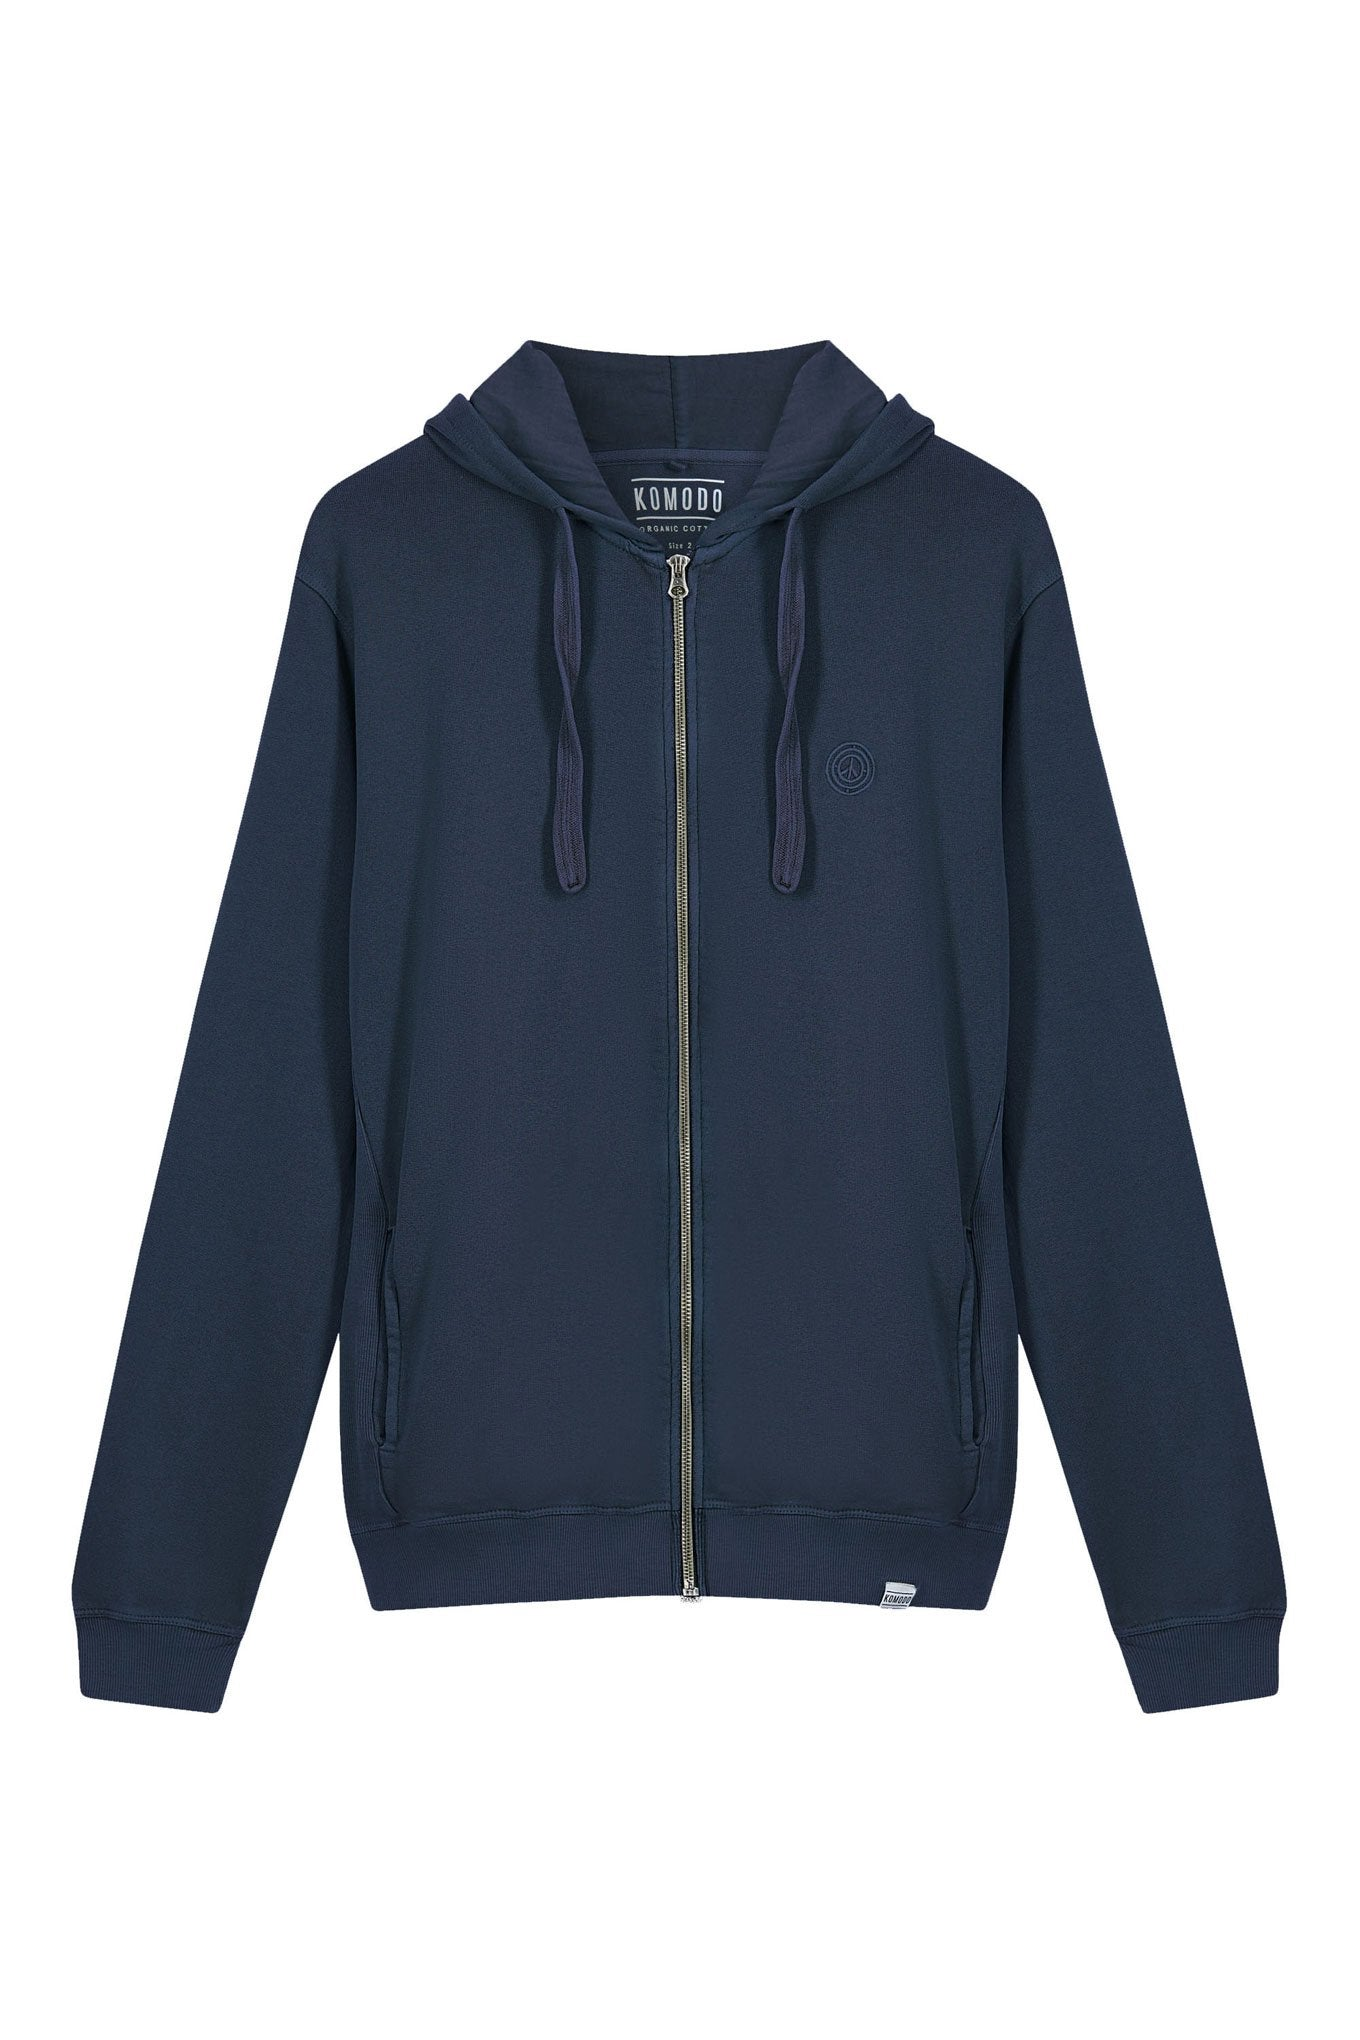 APOLLO Mens - GOTS Organic Cotton Zip Hoodie Navy